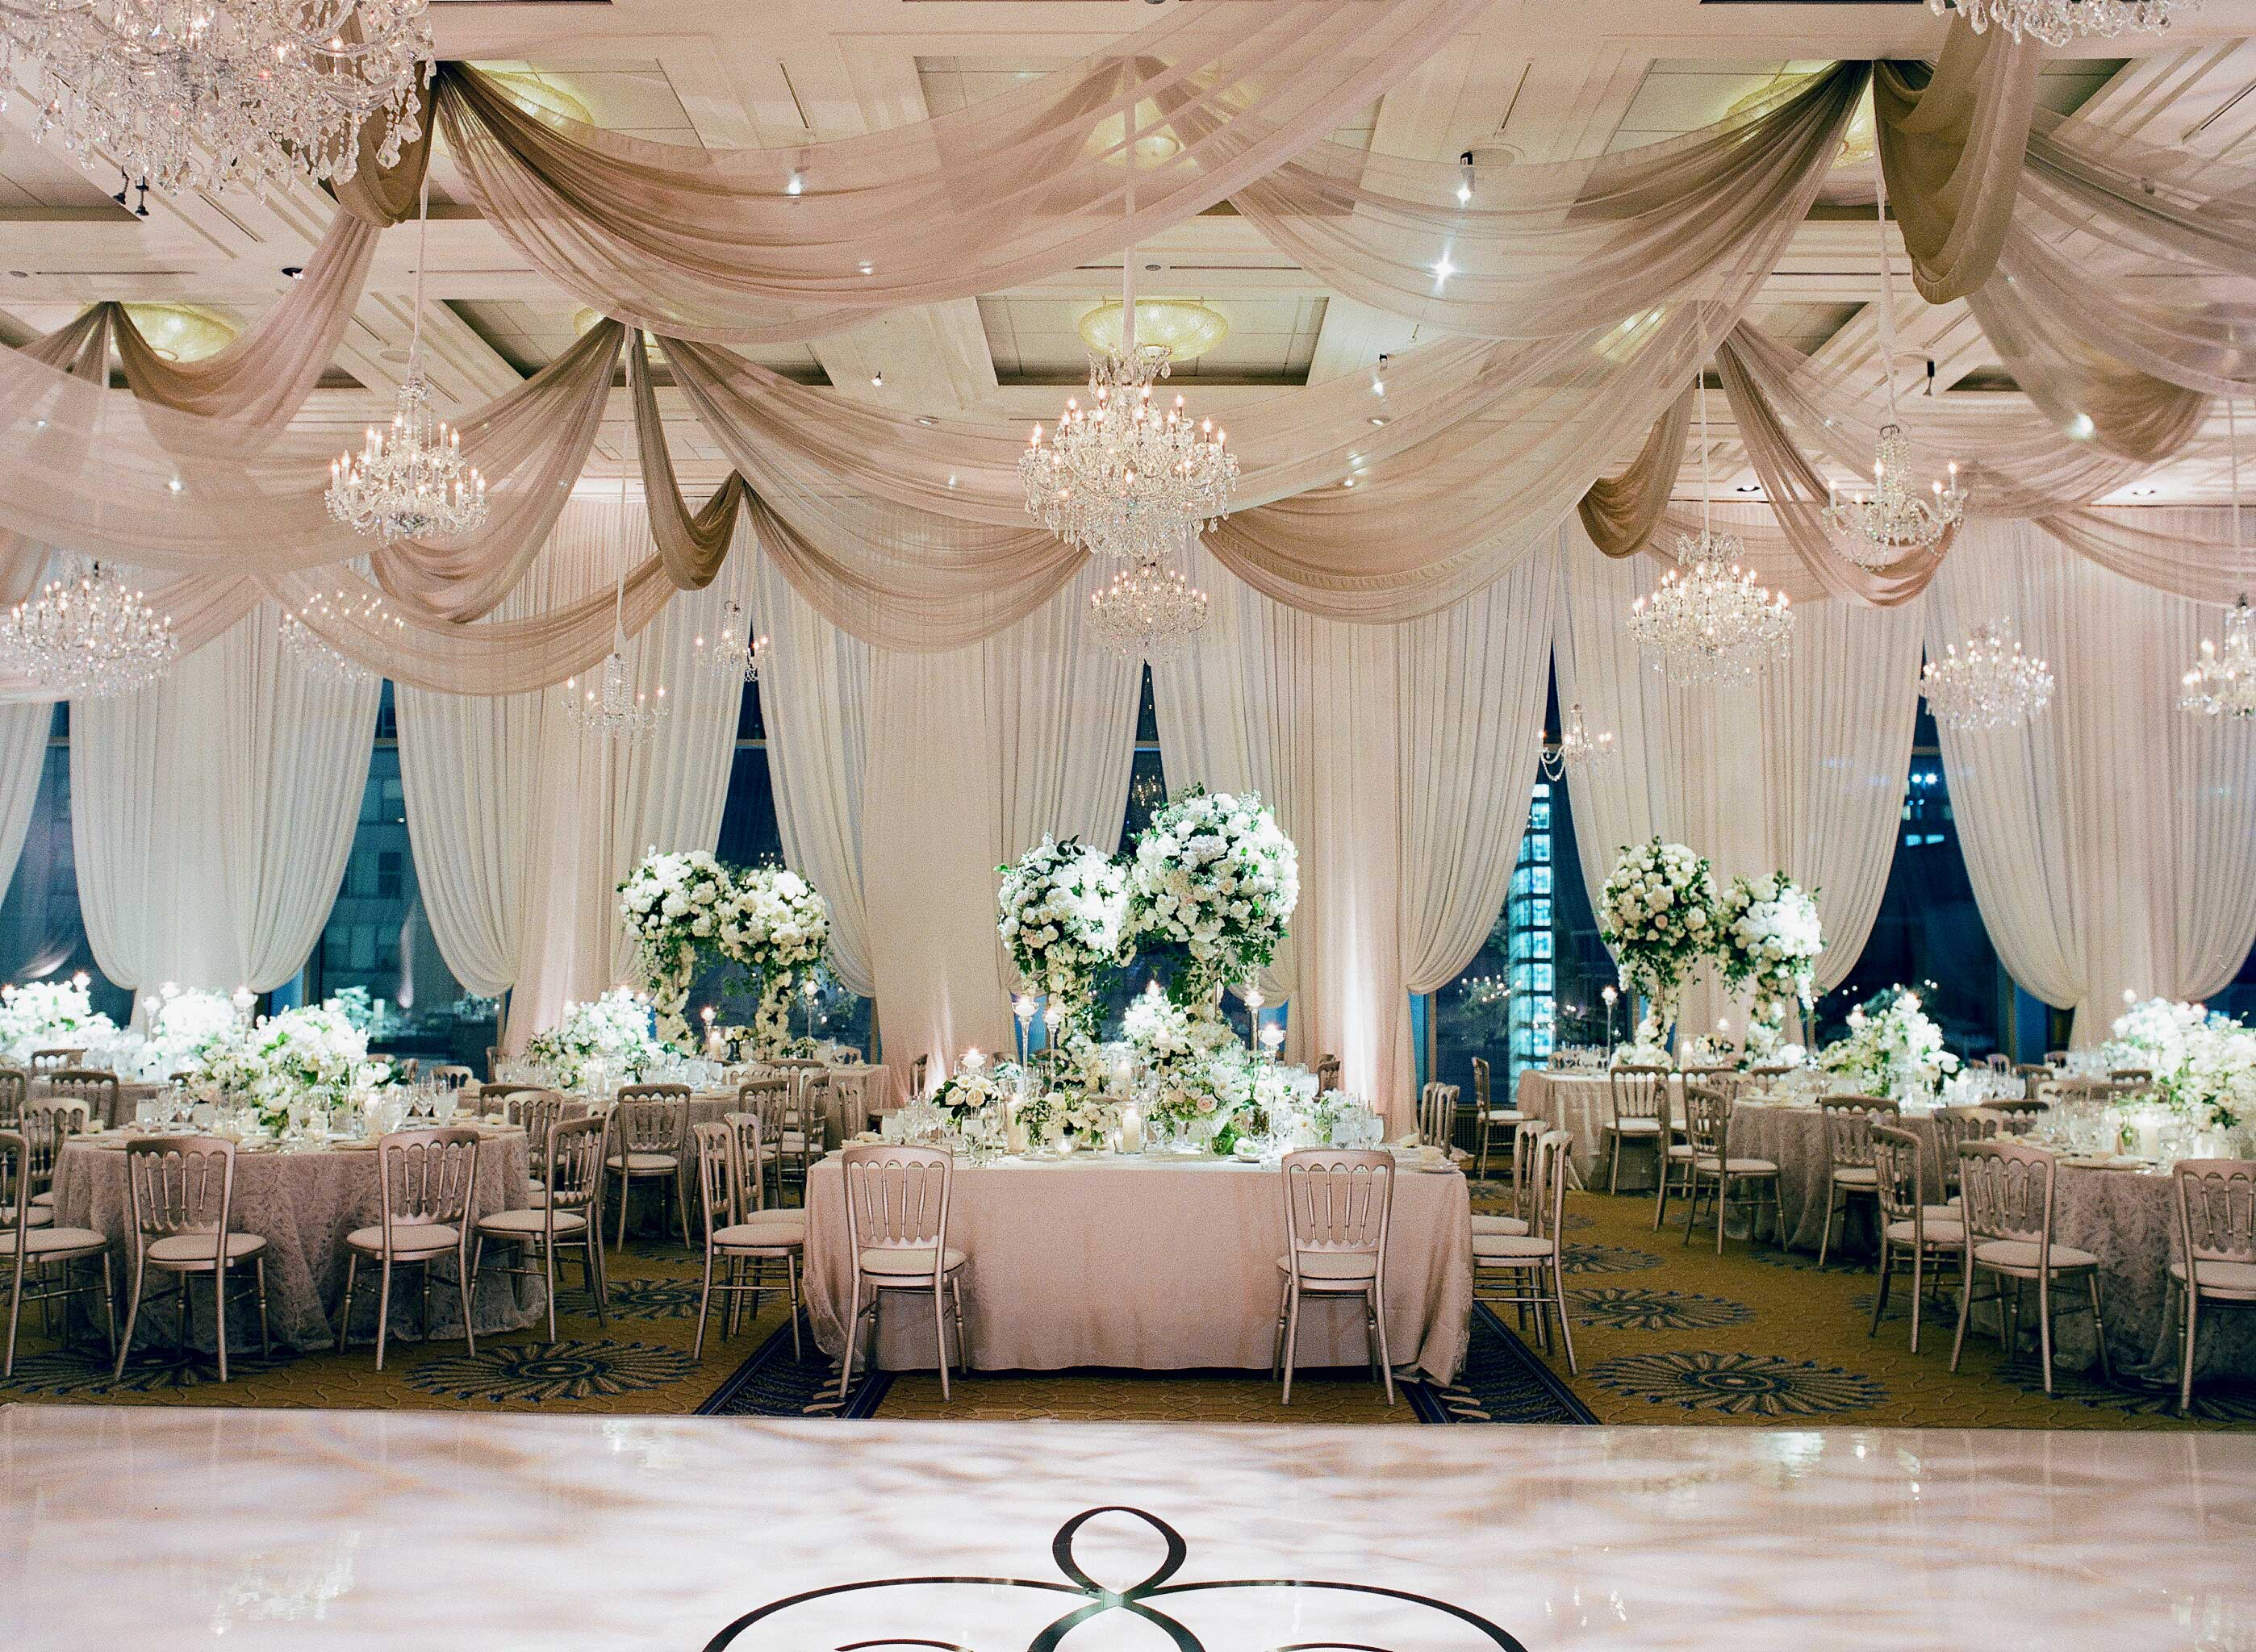 4 Festive And Chic Color Schemes For Your Spring Wedding